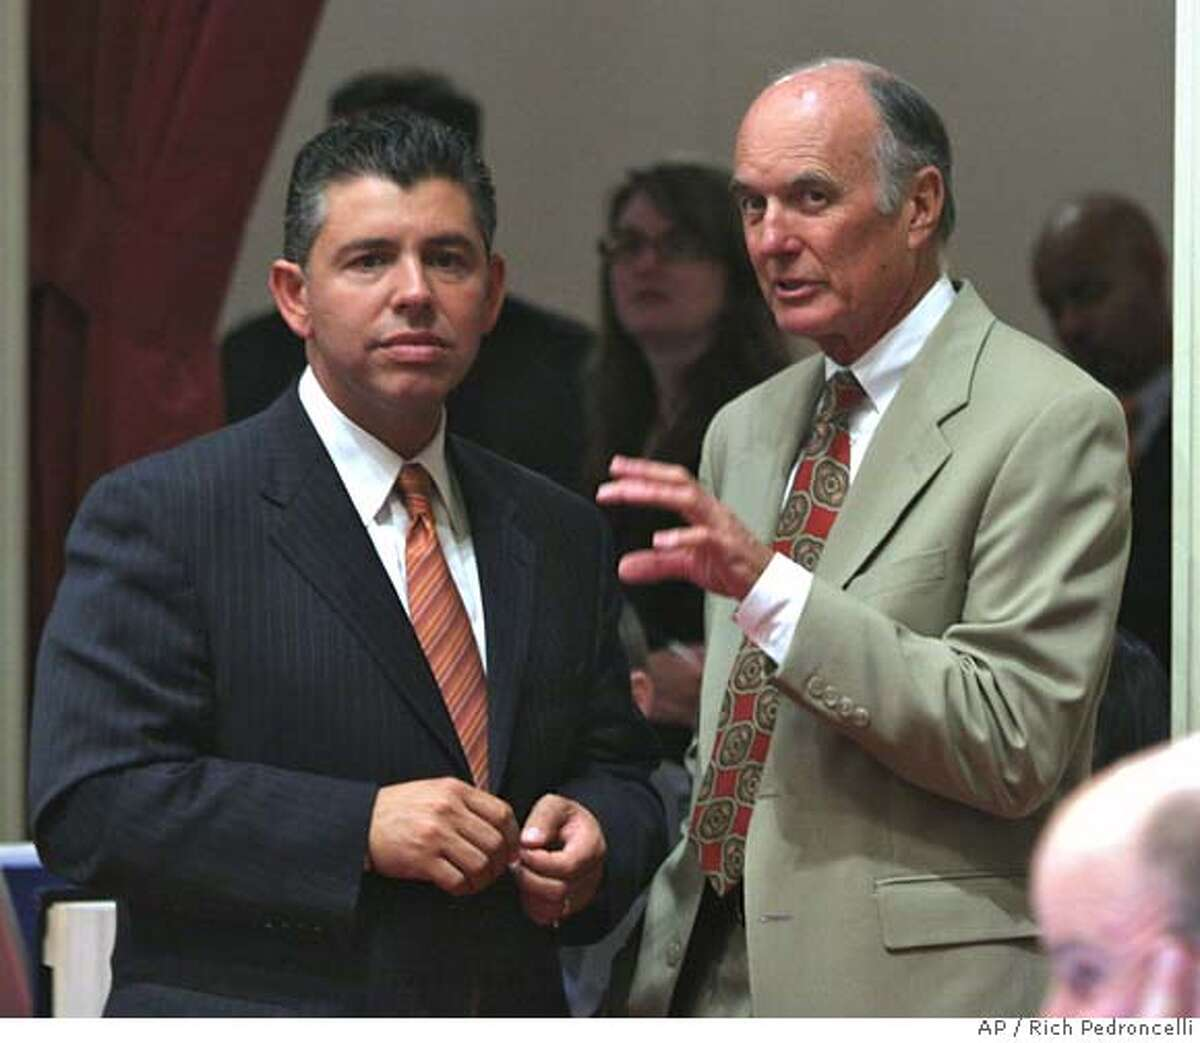 State Sen. Abel Maldonado, R-Santa Maria, left, and Senate Minority Leader Dick Ackerman, of Tustin, confer during the debate over the state budget at the Capitol in Sacramento, Calif., Tuesday, Aug. 21, 2007. Maldonado and Ackerman, were the only two Republicans to vote for the budget ending the stalemate that has lasted more than seven weeks beyond the July 1 start of the fiscal year. (AP Photo/Rich Pedroncelli)